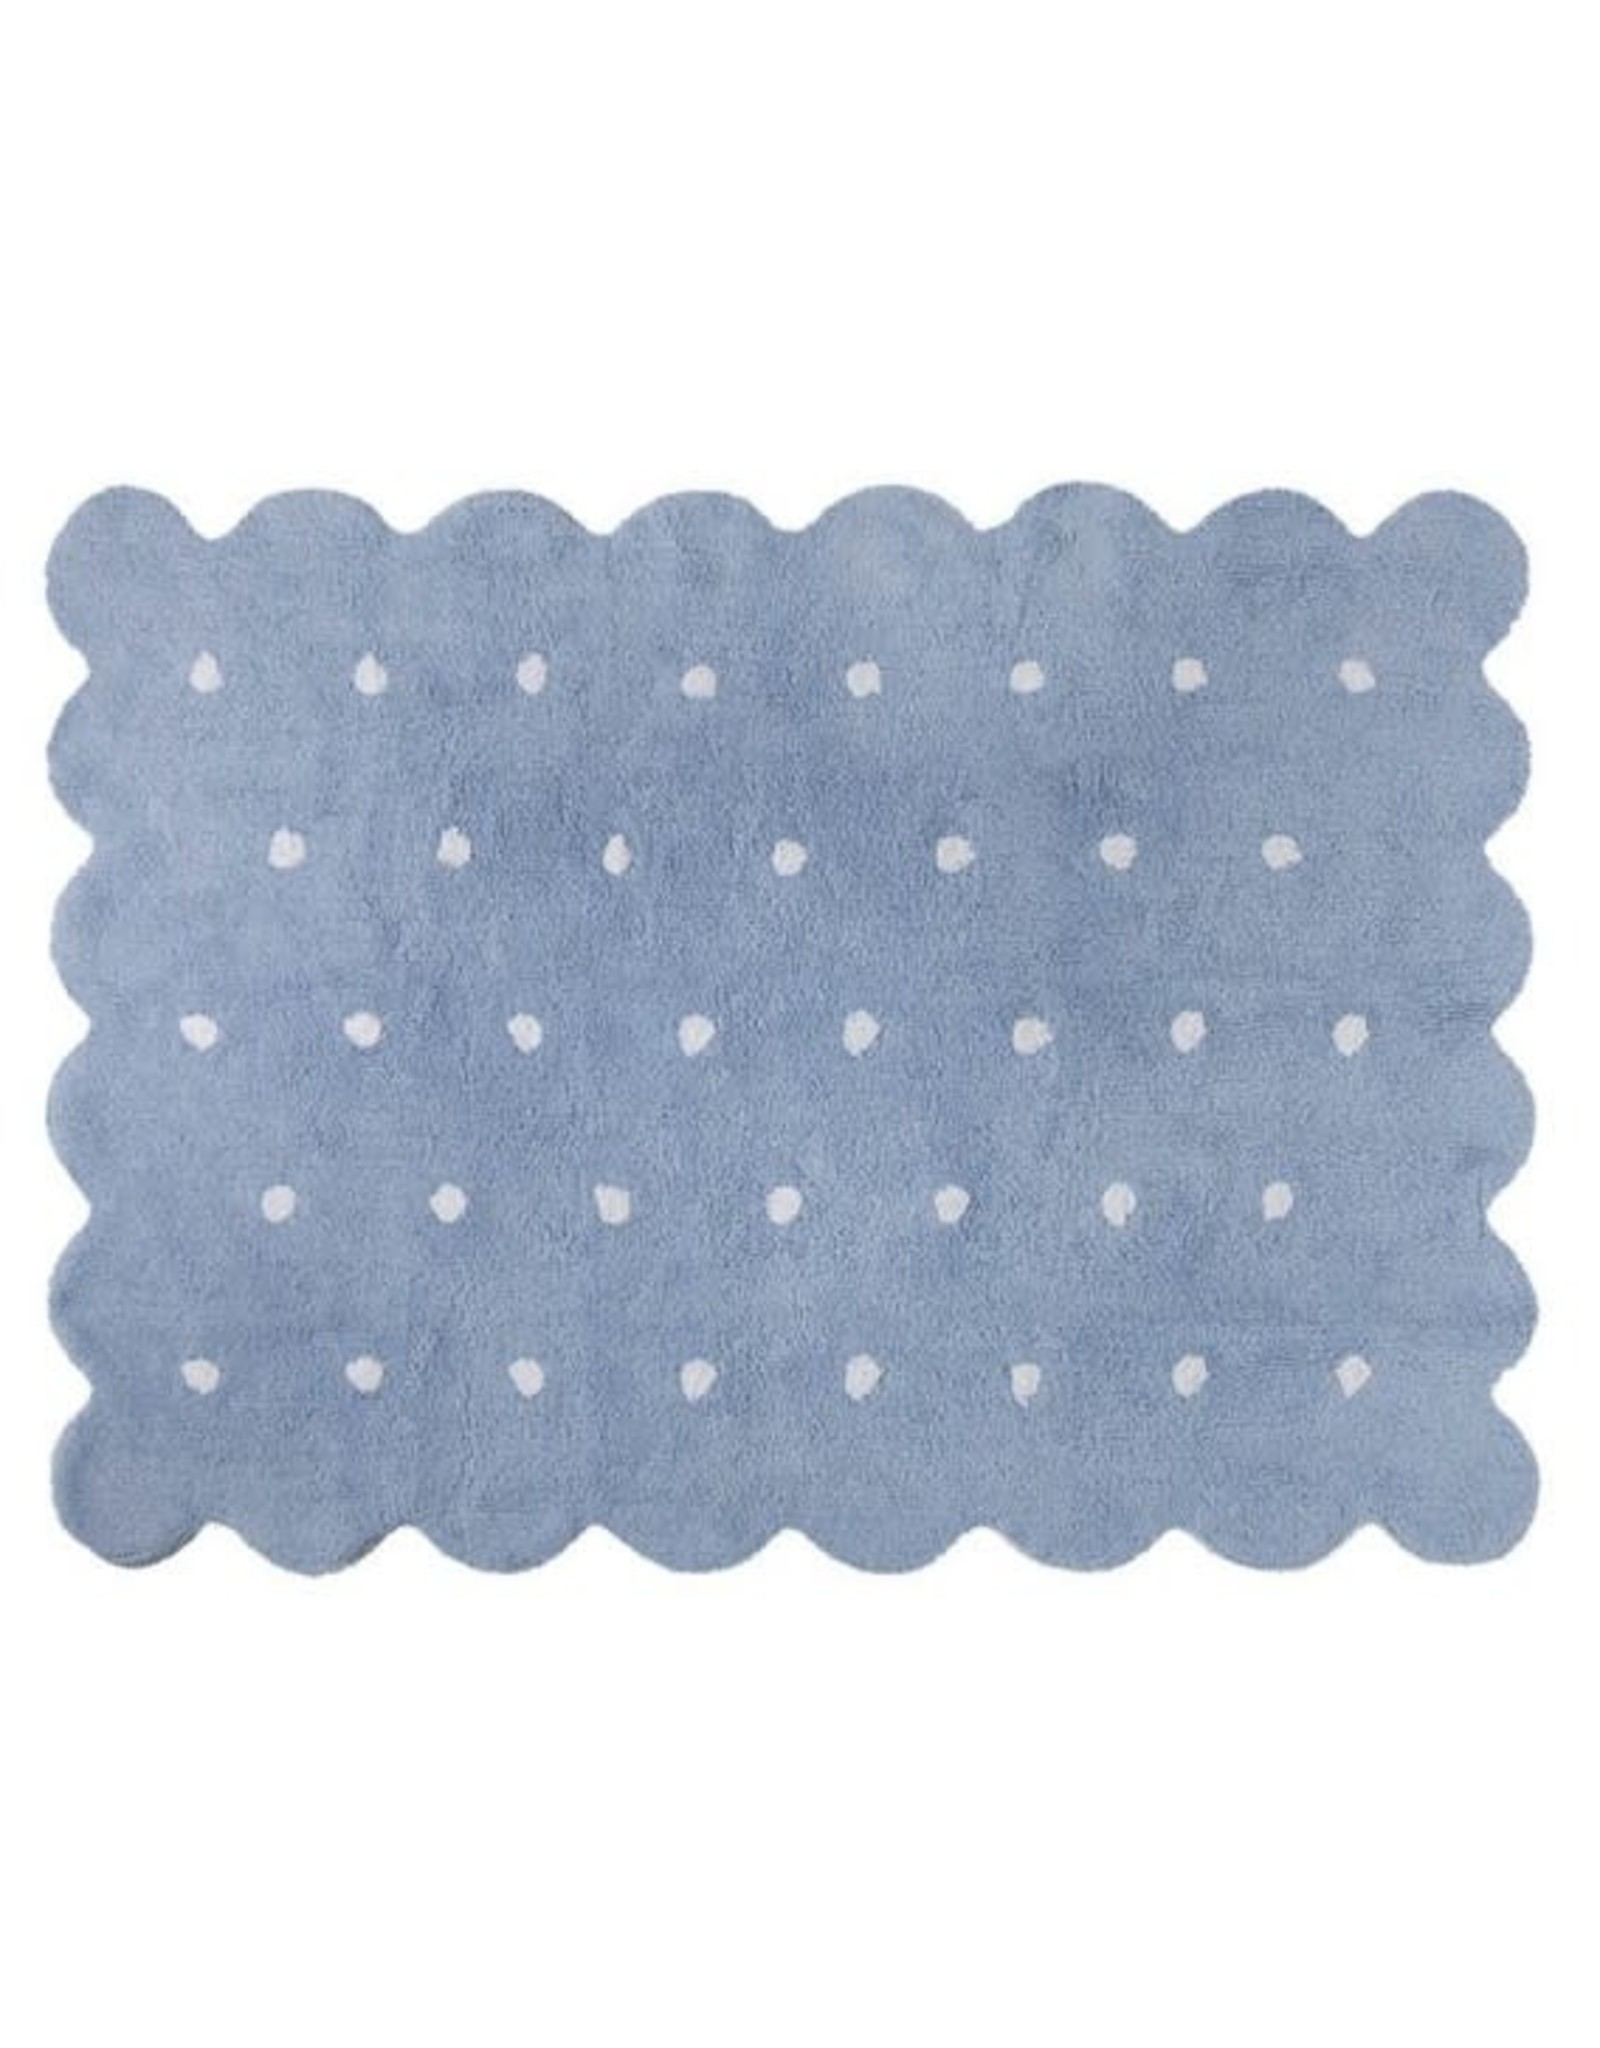 Lorena canals Lorena CanalsWashable Rug Biscuit Blue 120x160